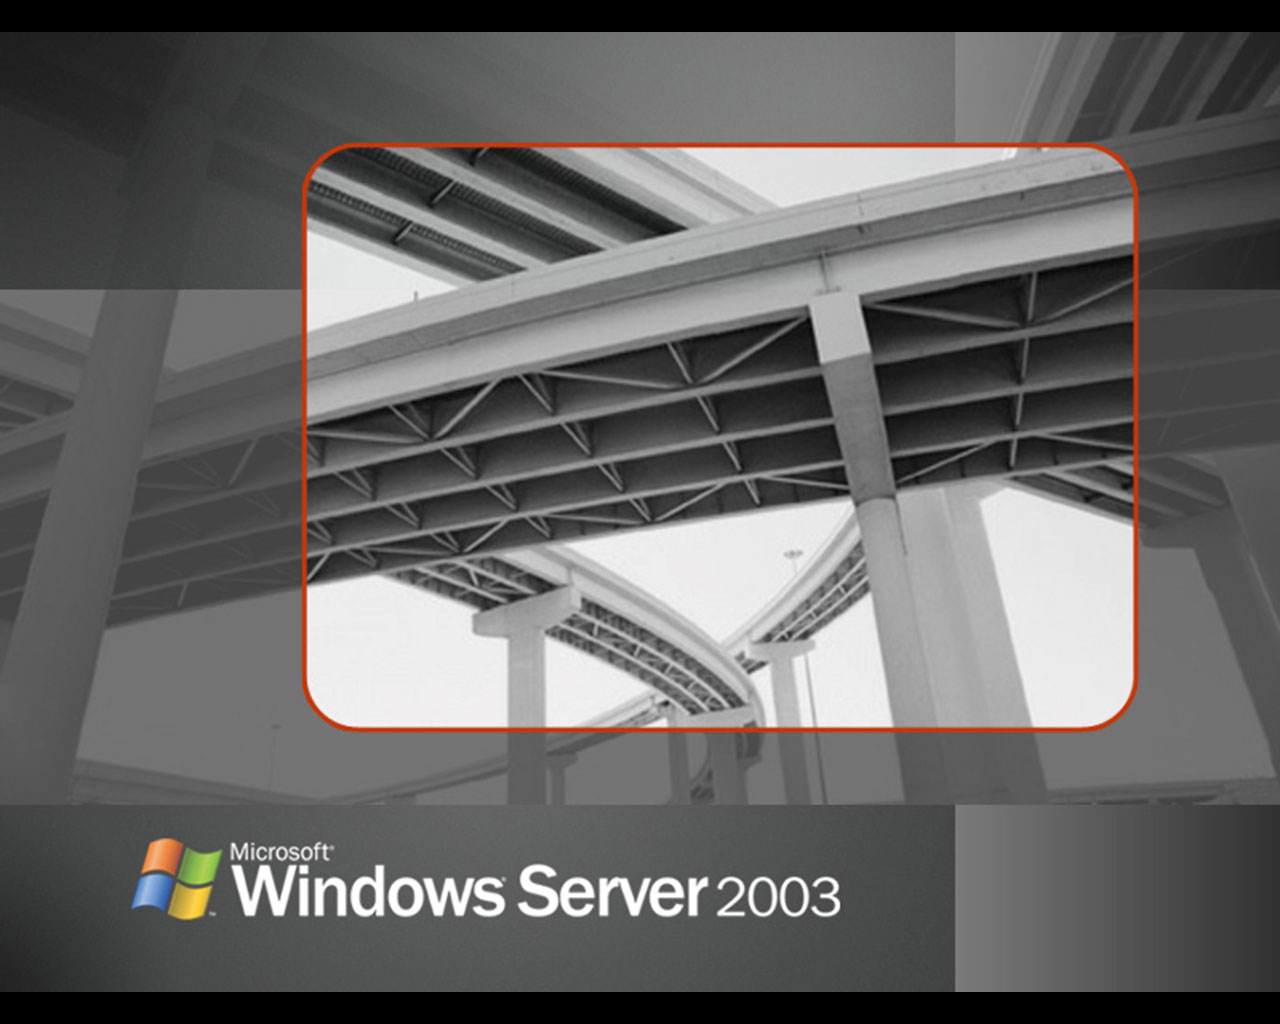 Windows Server 2003 R2 üzerine AD kurulumu